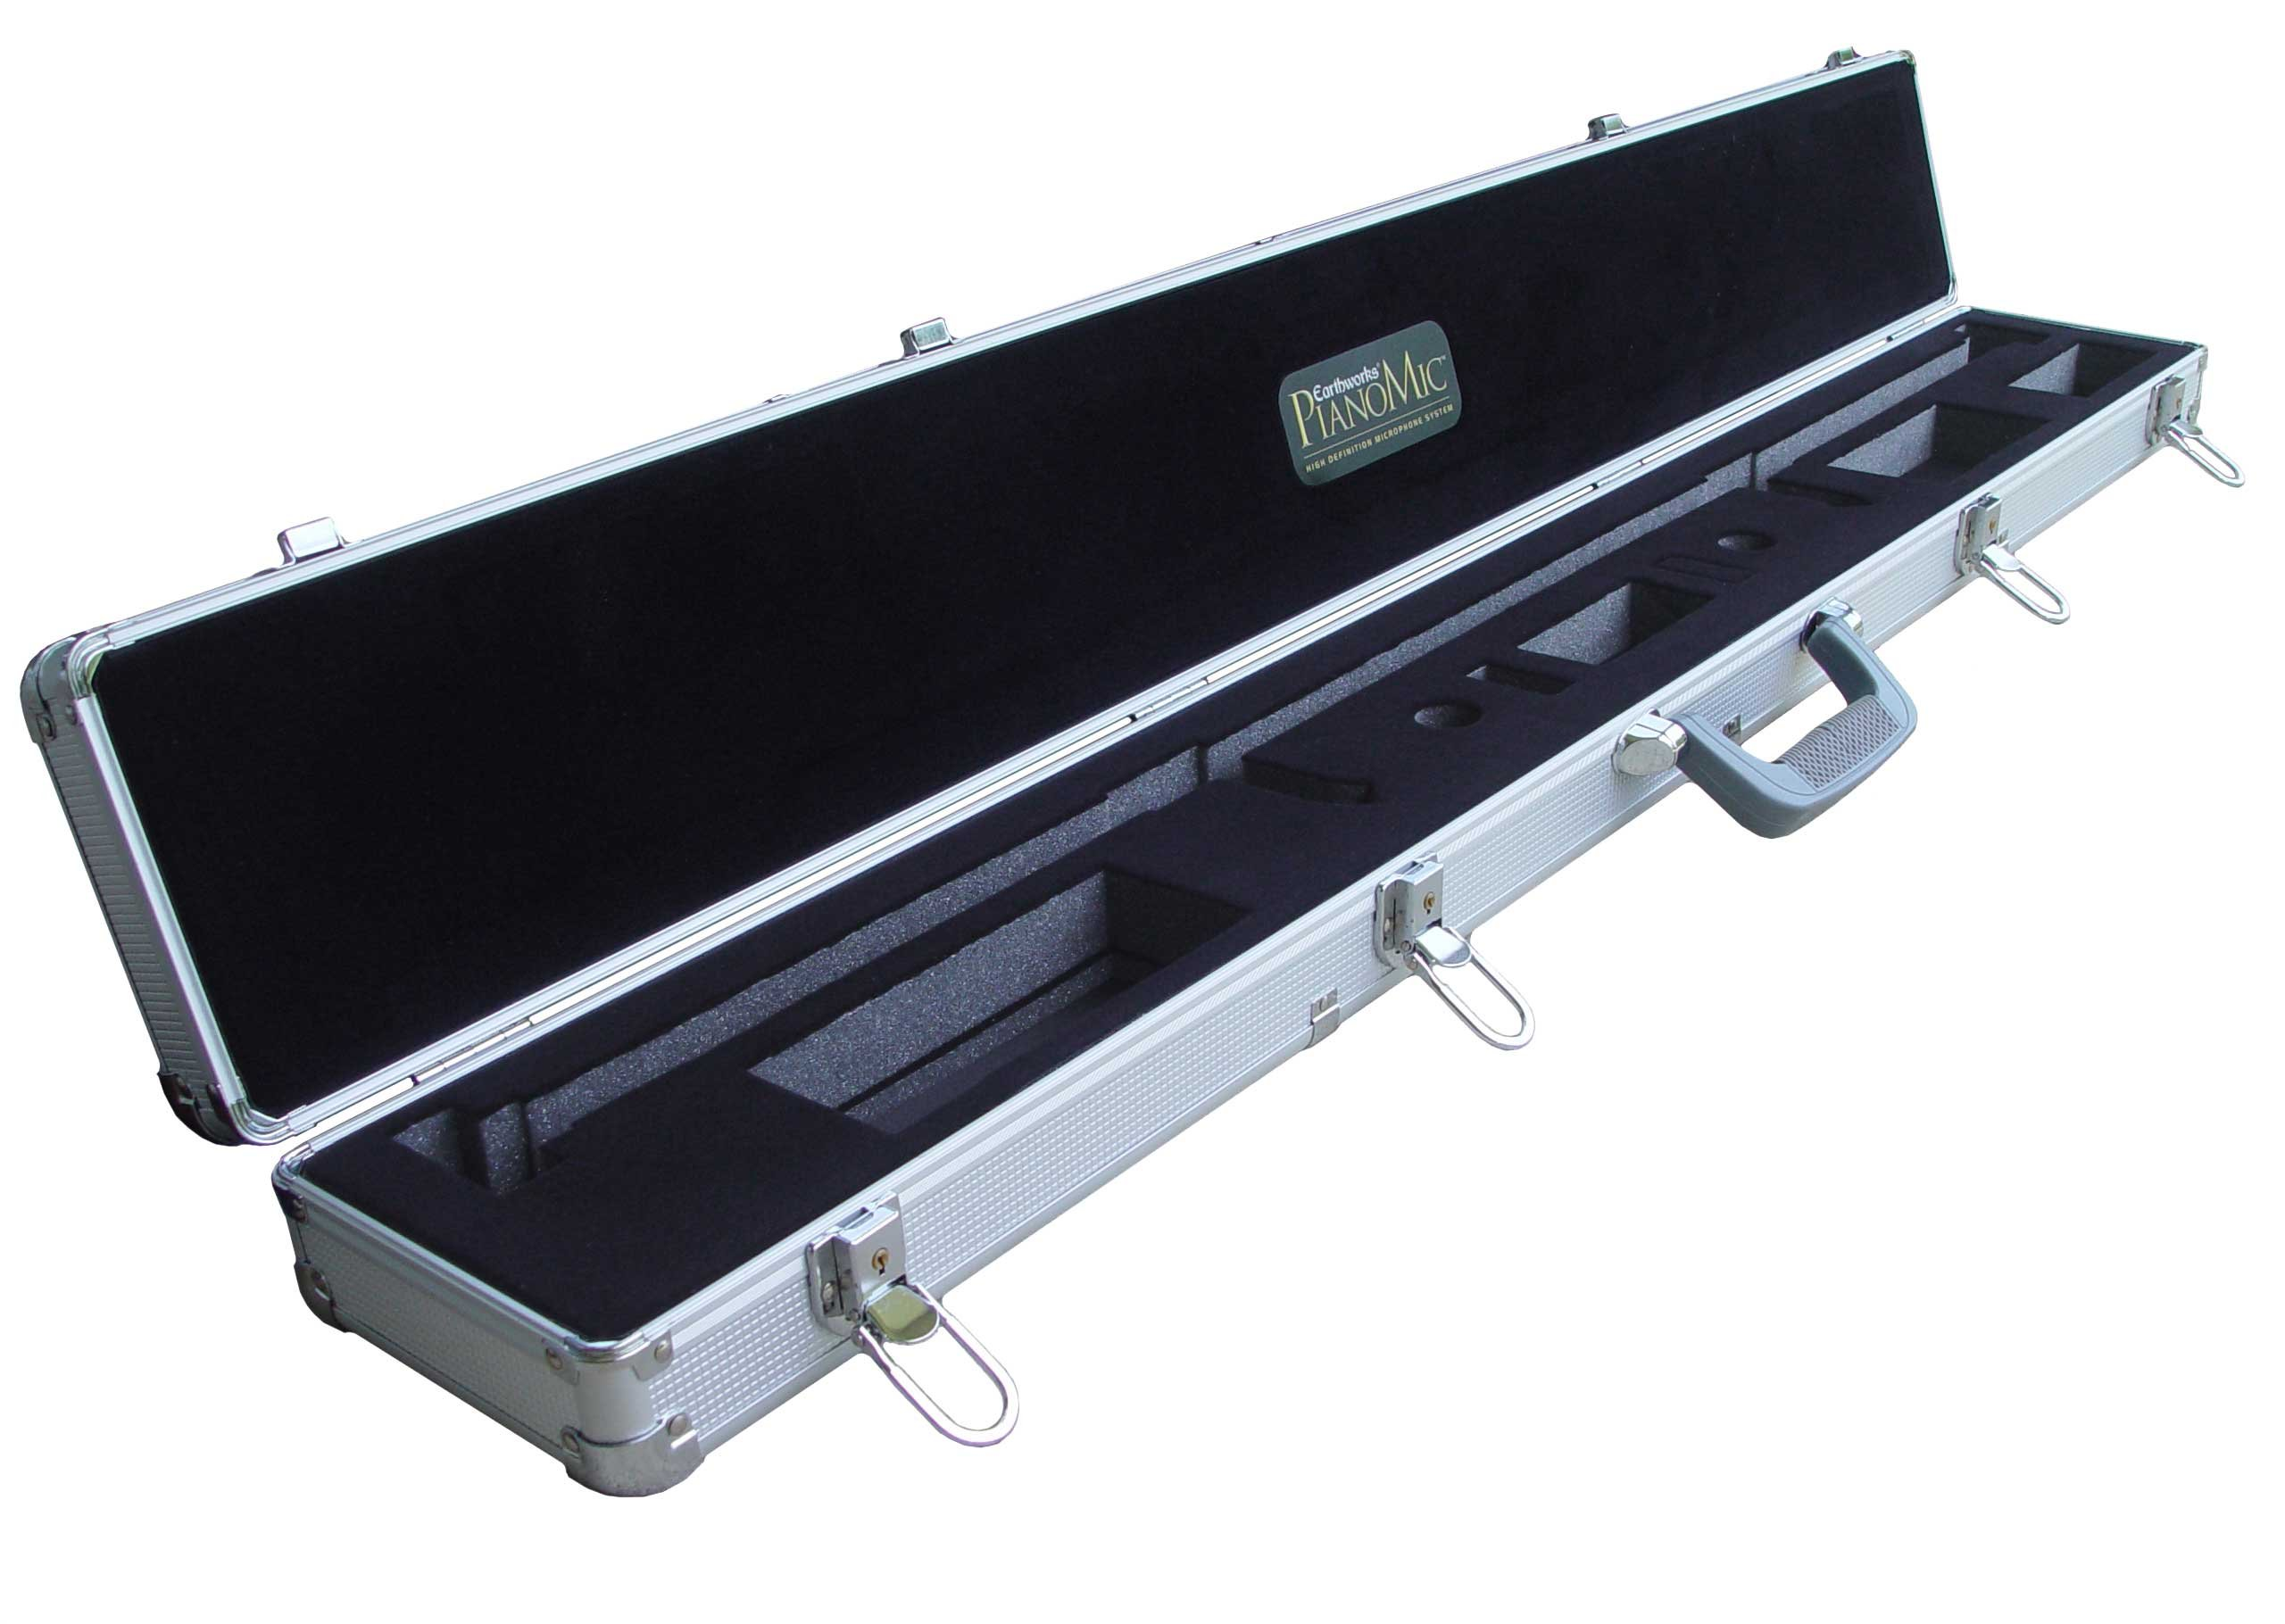 Case For PM40 PianoMic System